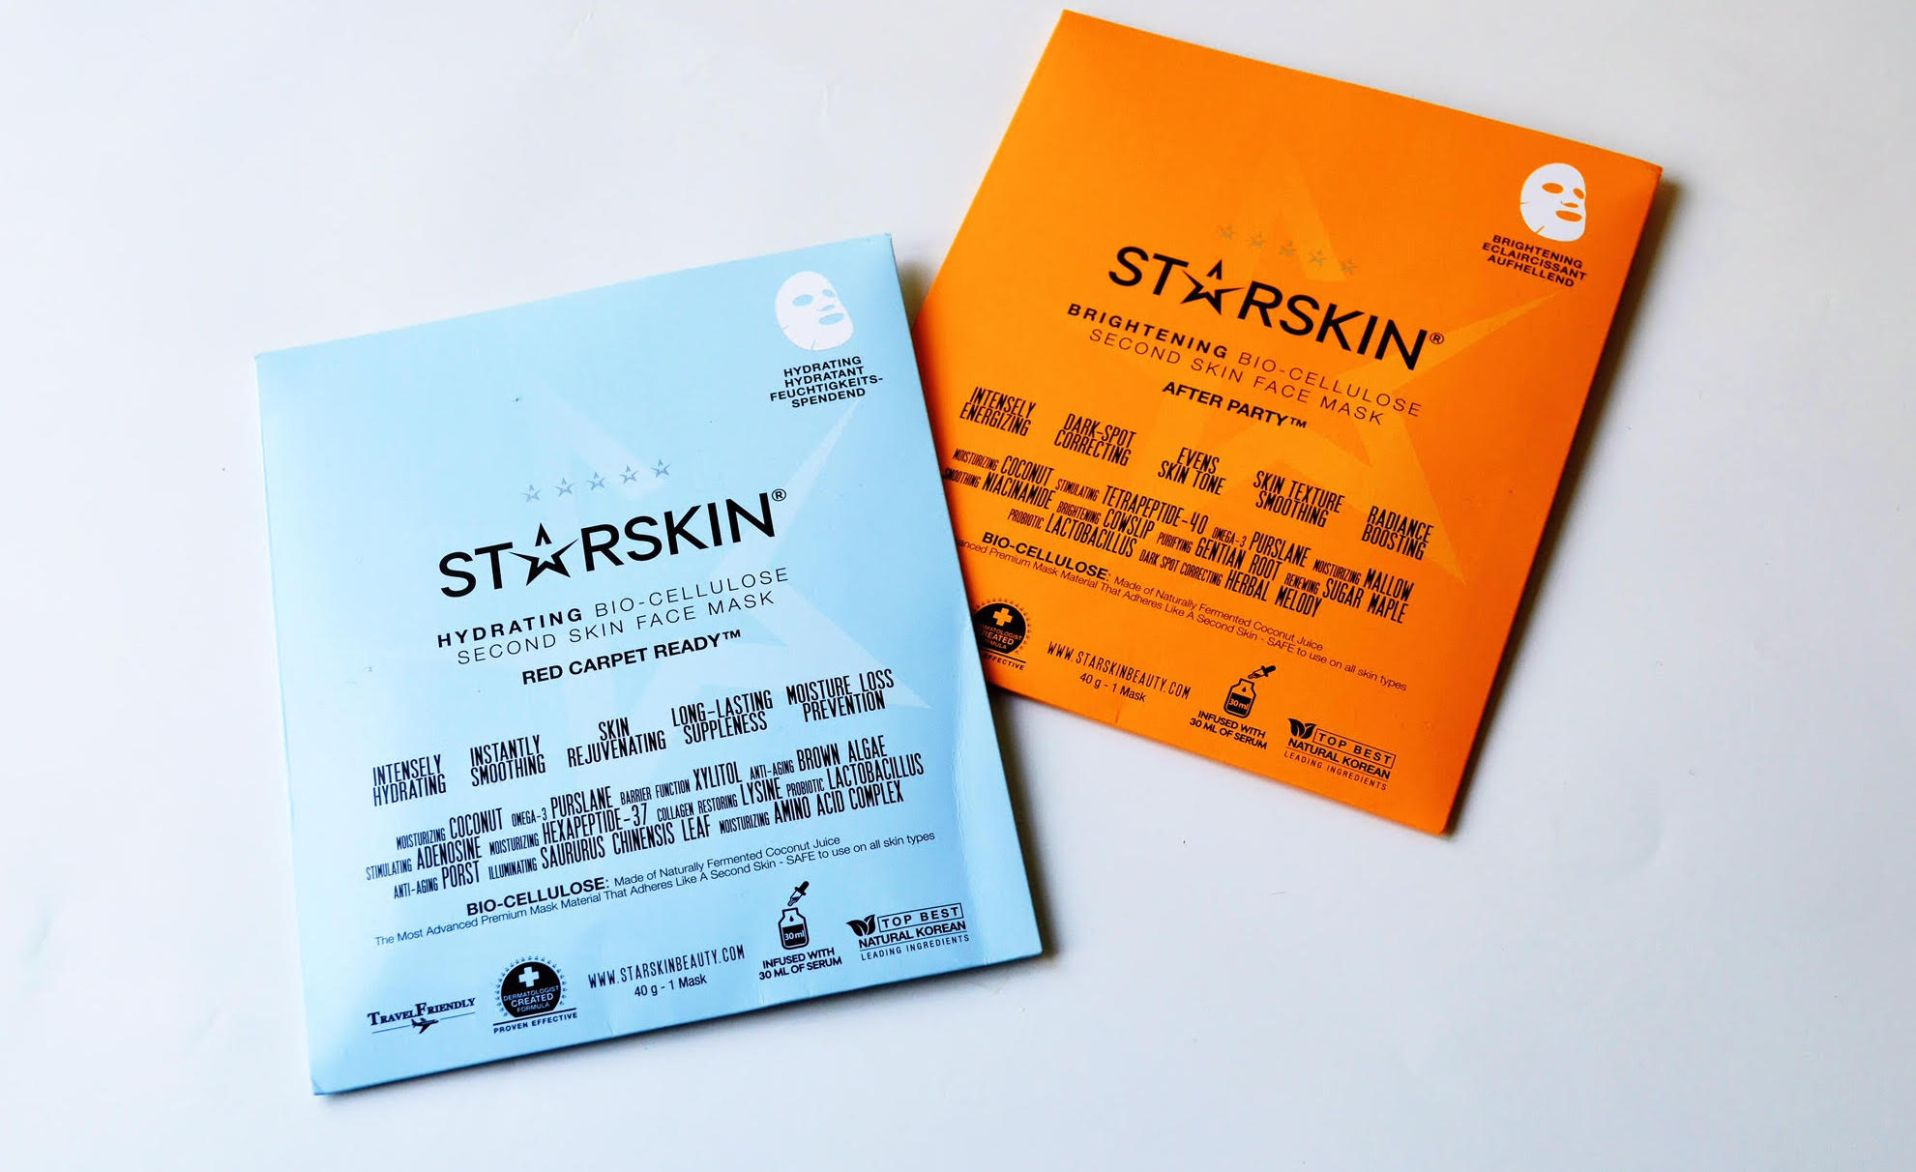 blush-london-reviews-starskin-face-mask